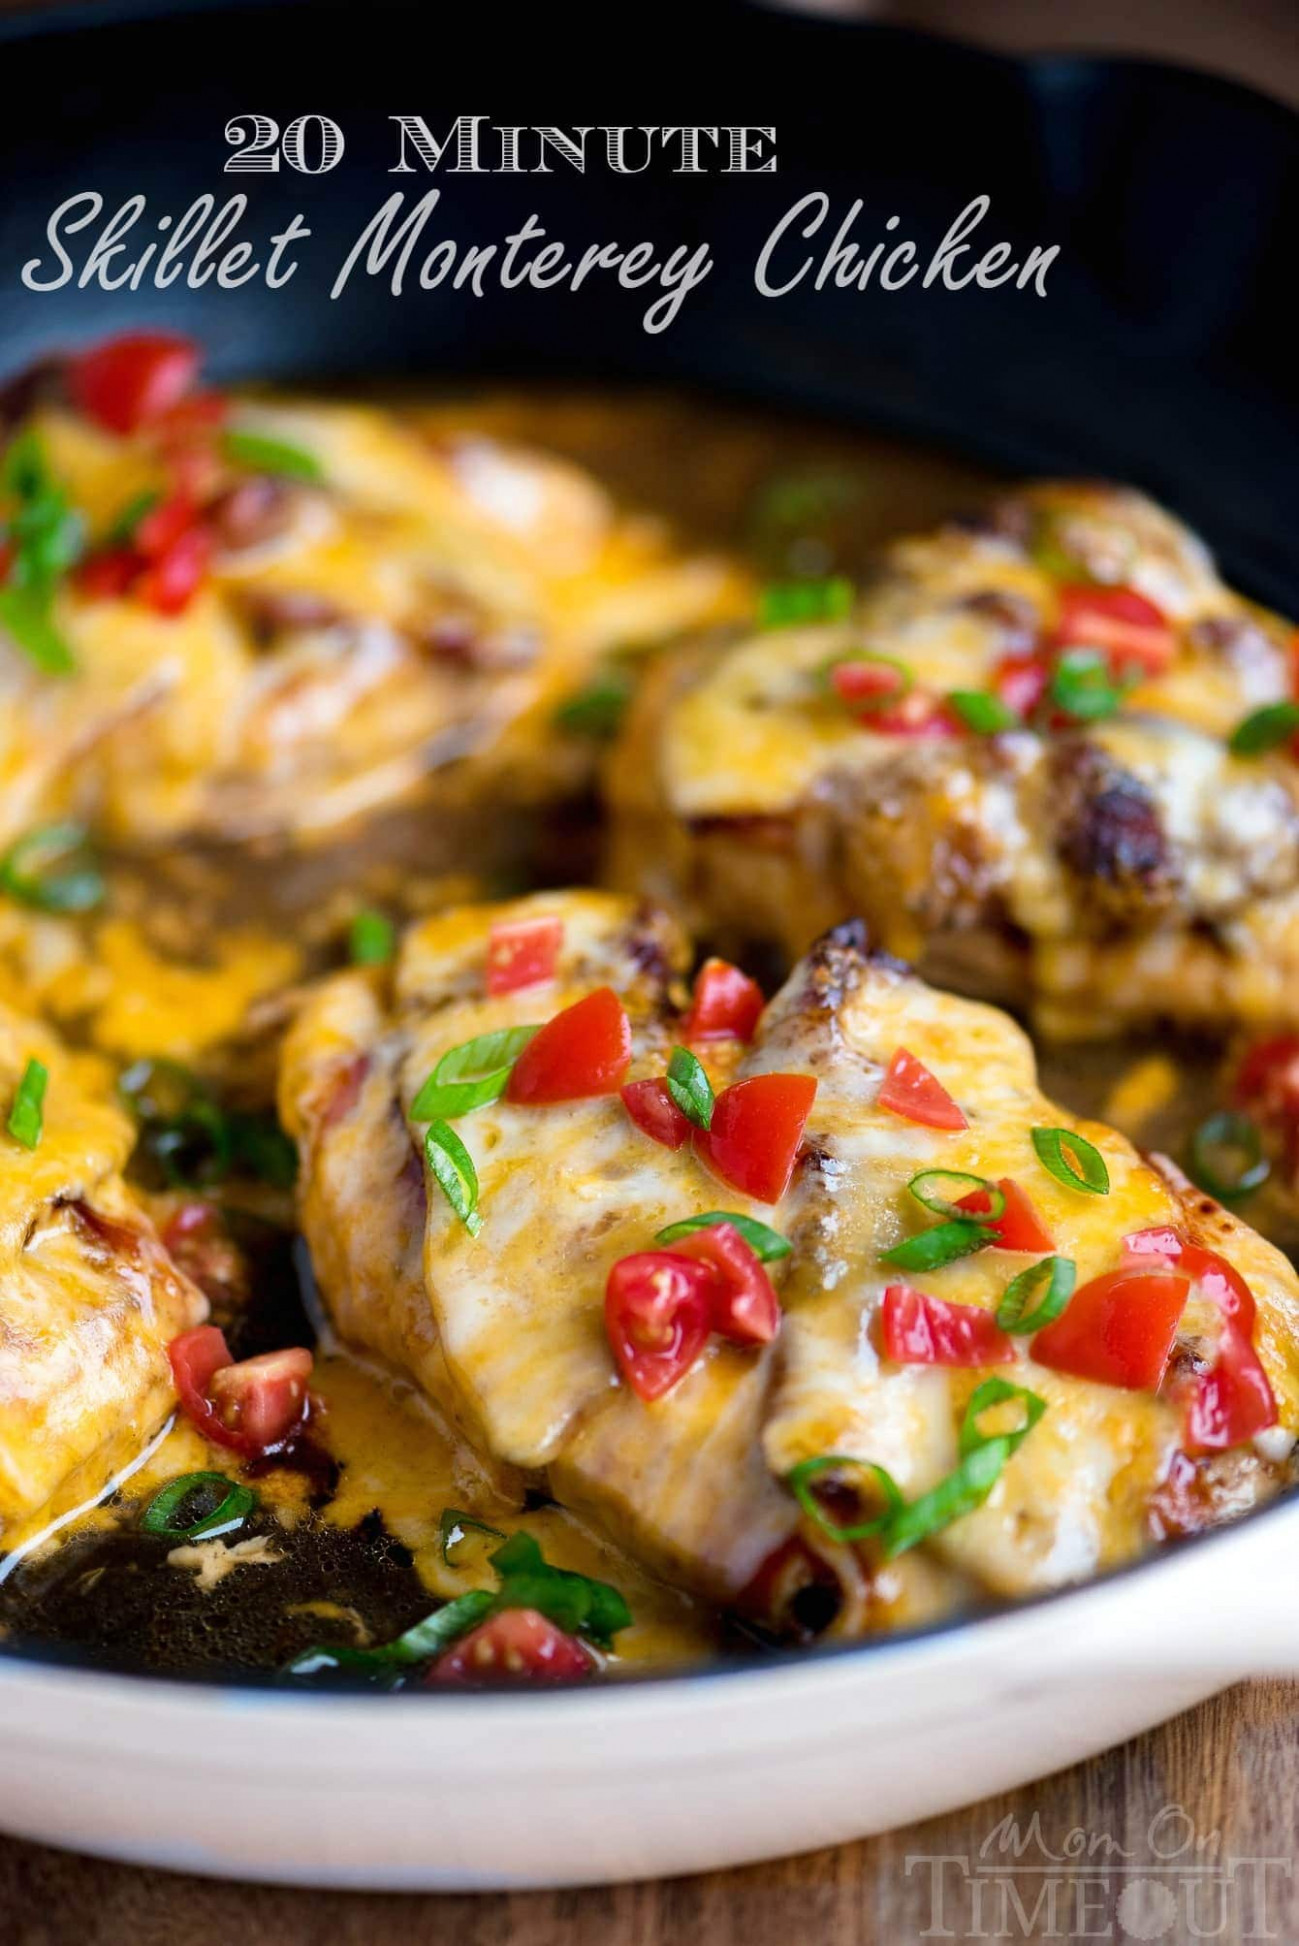 14 Minute Skillet Monterey Chicken - valerie bertinelli recipes chicken thighs